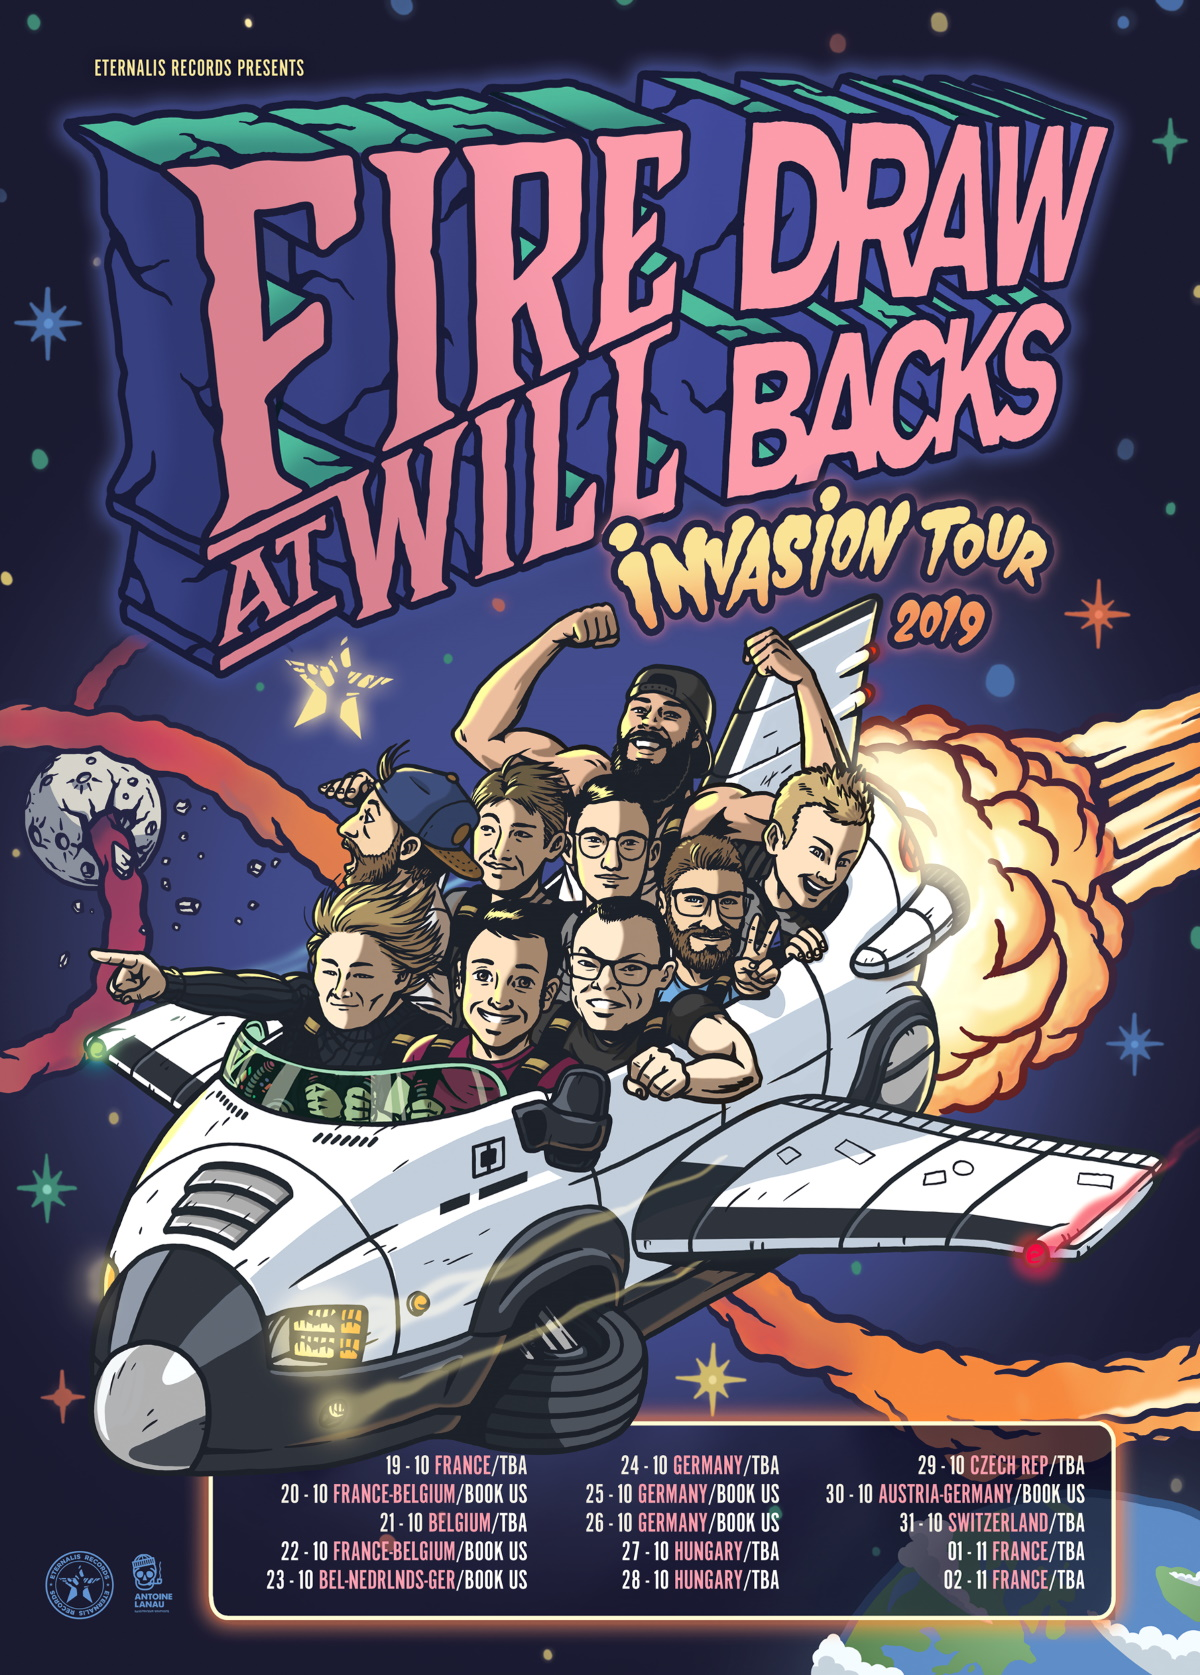 FIRE AT WILL and DRAWBACKS tour